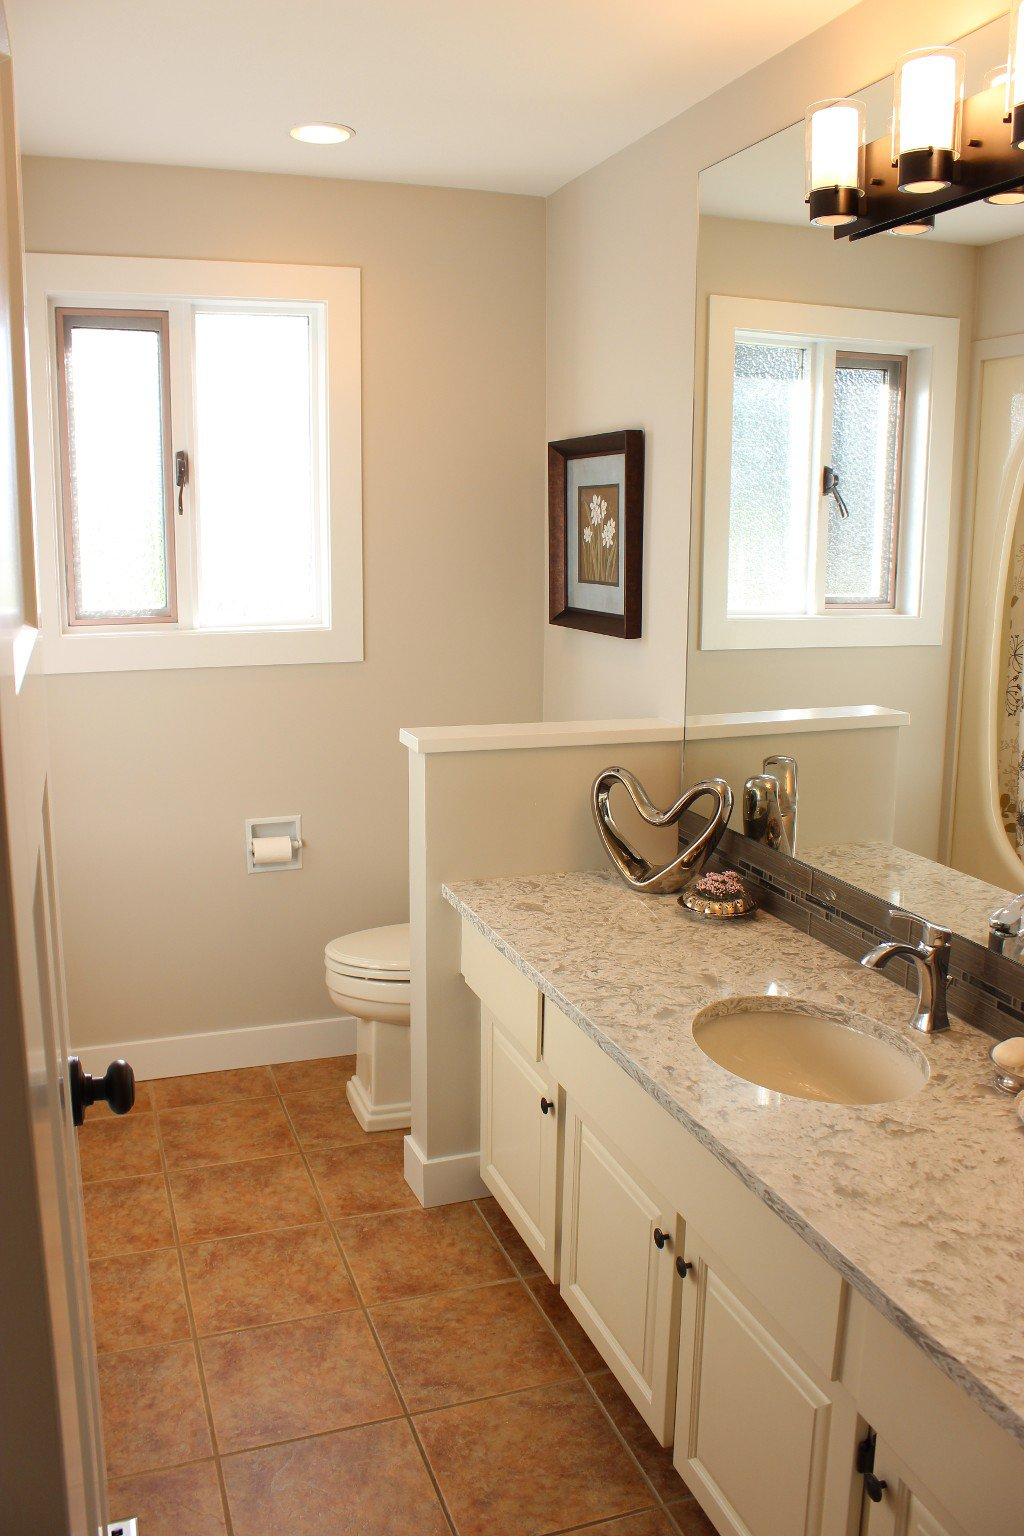 Photo 23: Photos: 3673 Navatanee Drive in Kamloops: South Thompson Valley House for sale : MLS®# New